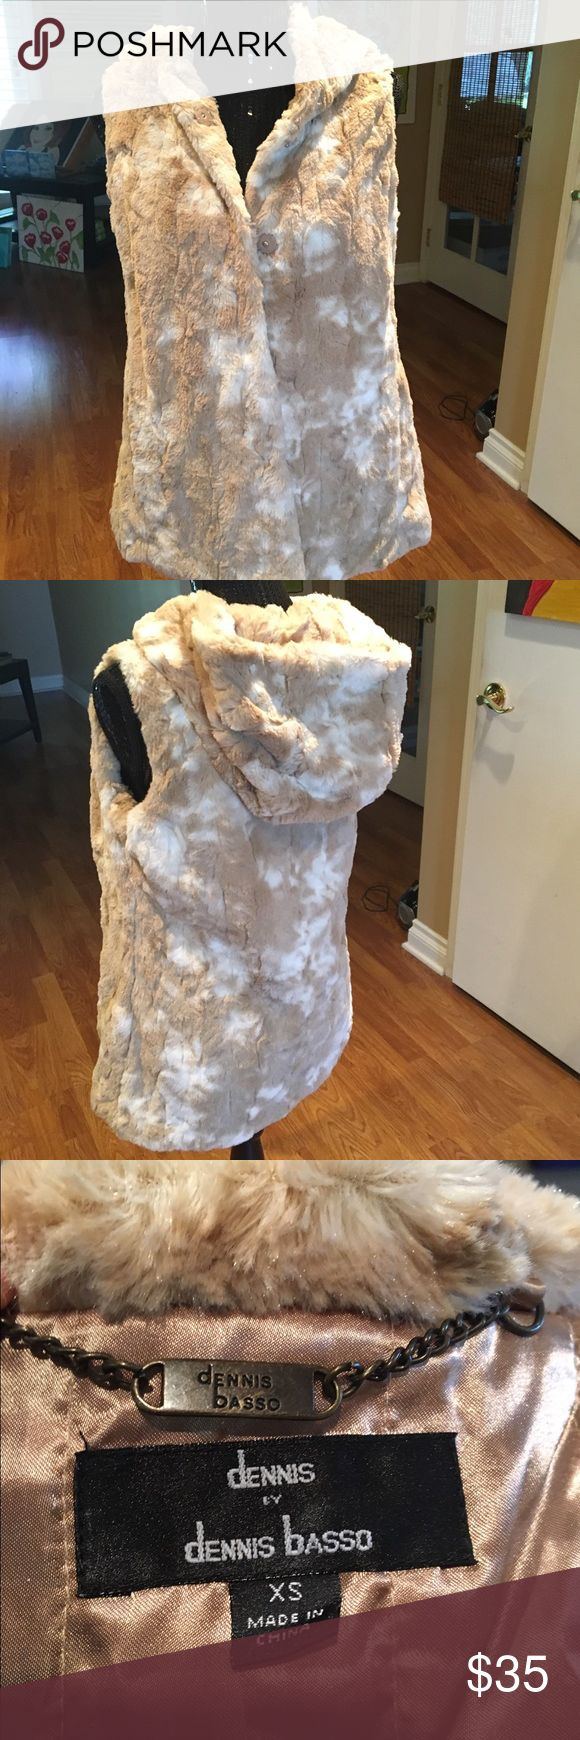 Dennis Basso Faux Fur Dennis Basso Faux Fur hooded vest. Sooooooo soft and comfy! There are pockets and a snap front closure. NWOT. Dennis Basso Jackets & Coats Vests